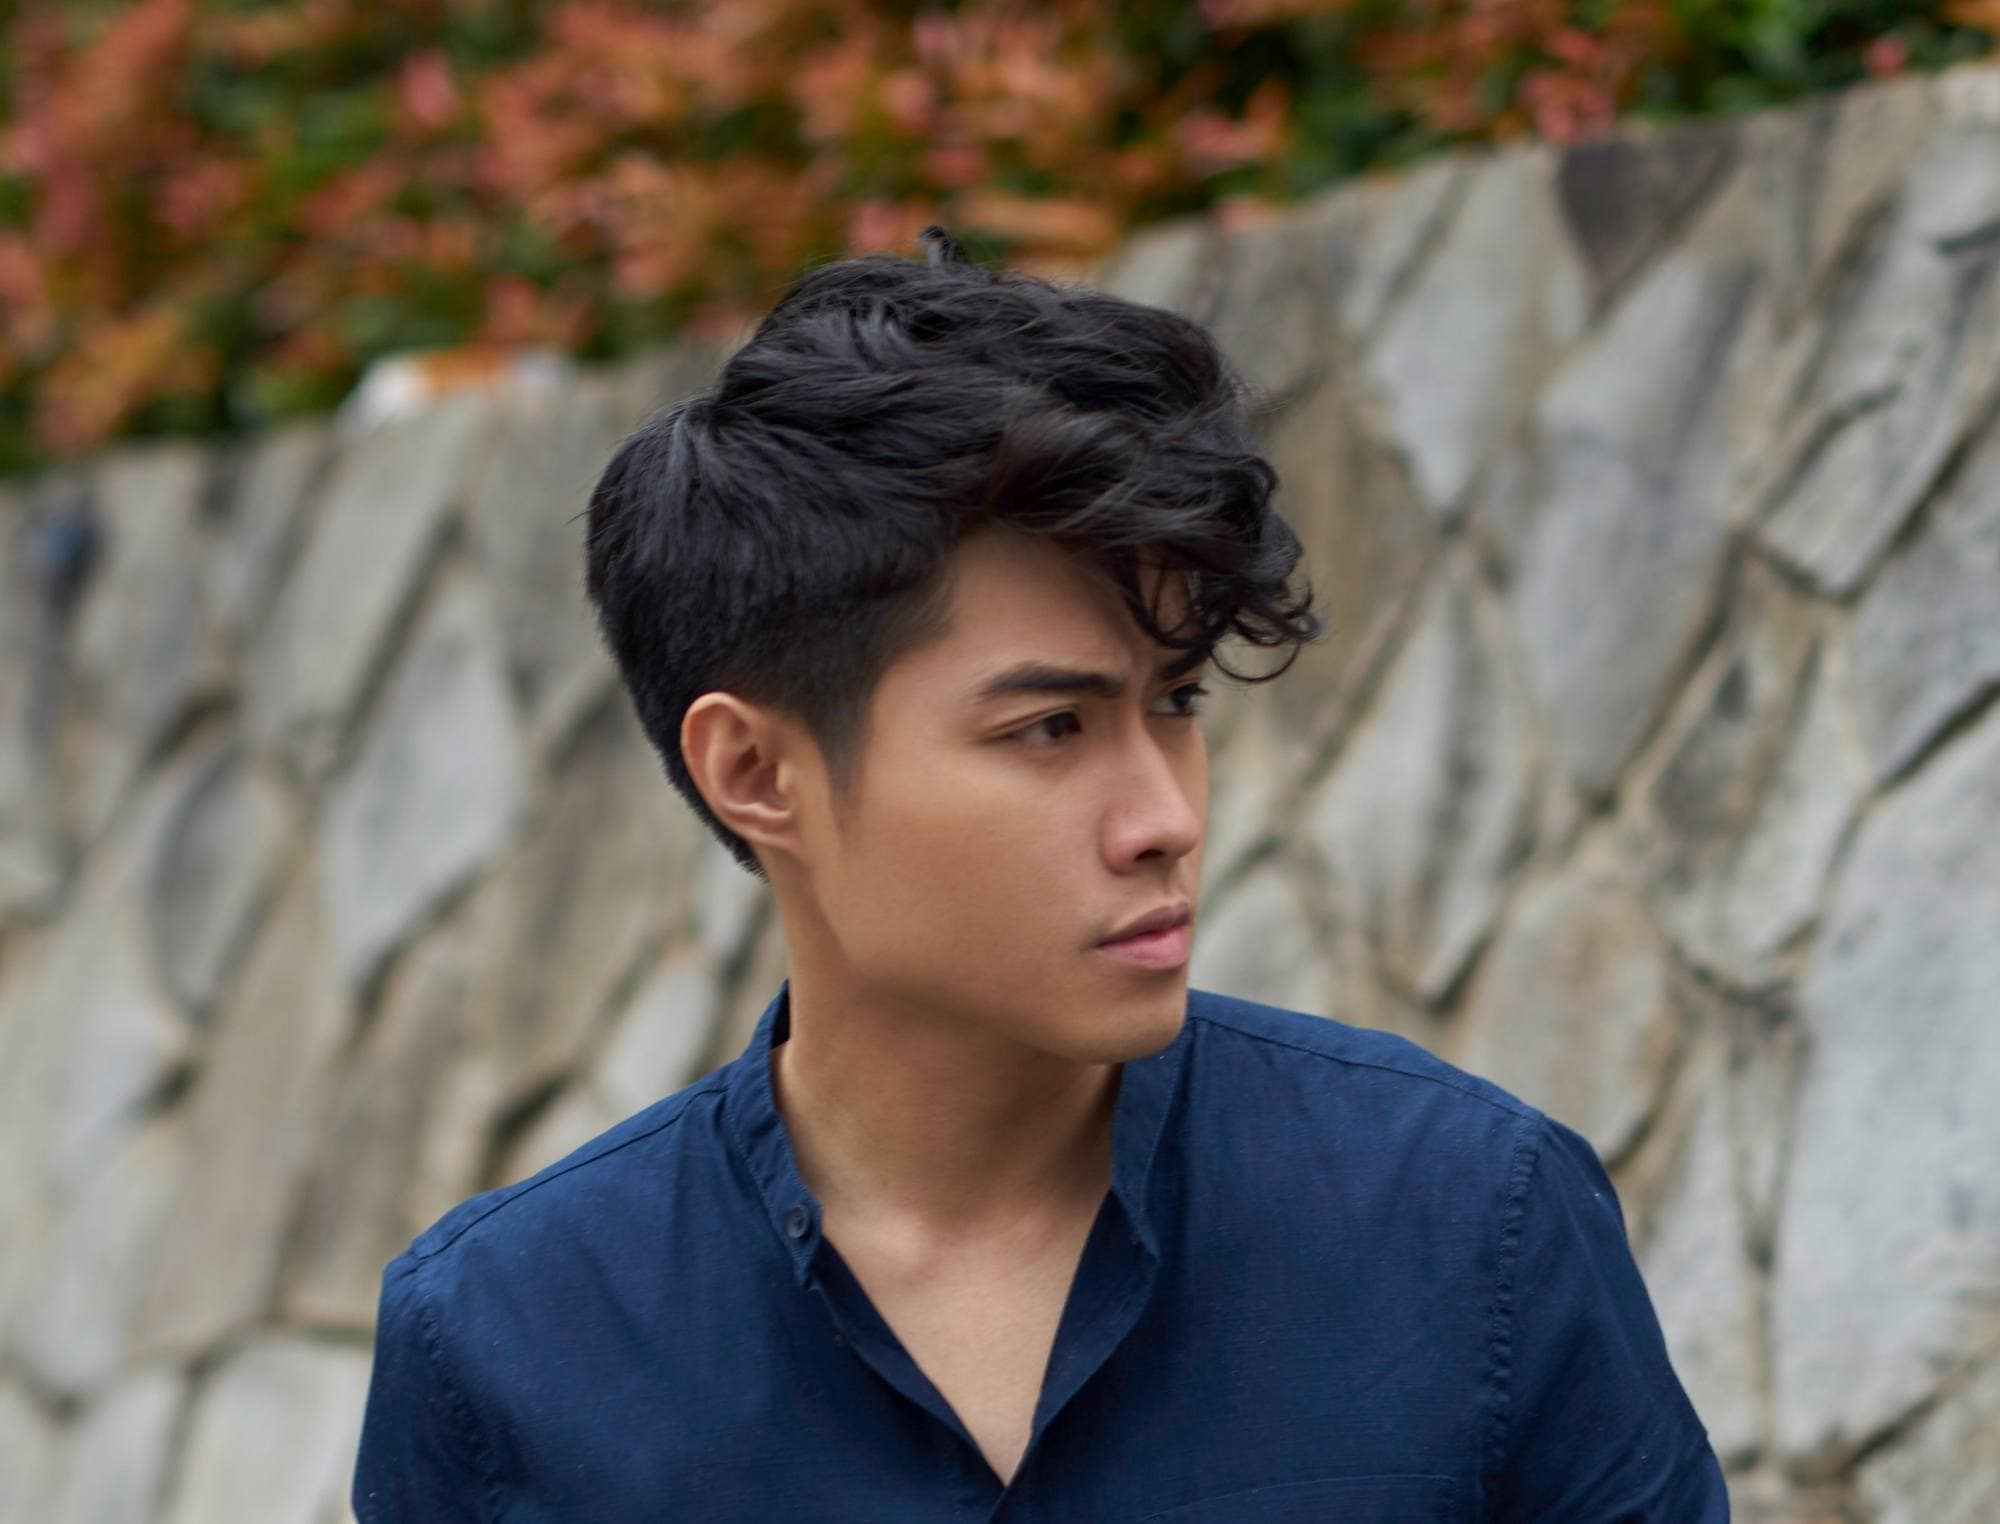 Messy hairstyles for men: Closeup shot of an Asian man with black textured wavy hair wearing a blue polo outdoors